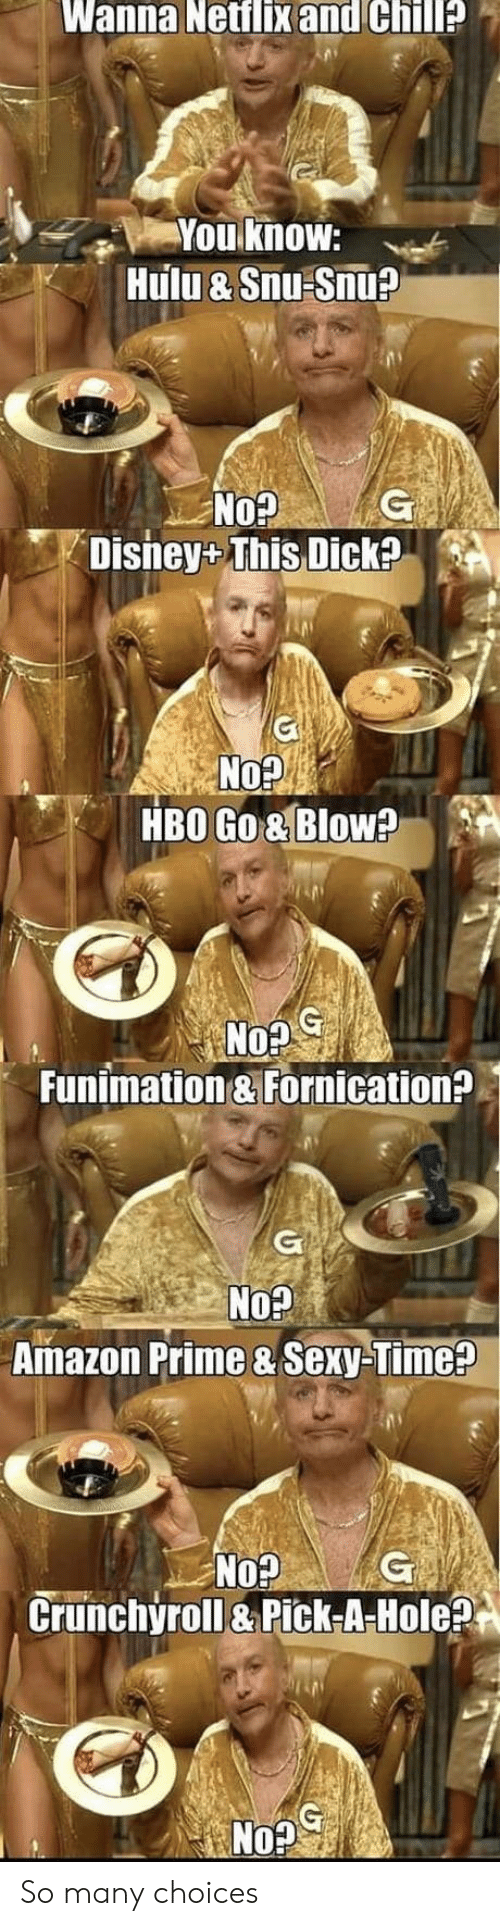 Amazon, Amazon Prime, and Chill: Wanna Netflix and Chill?  You know:  Hulu & Snu Snu?  G  No?  Disney+ This Dick?  No?  HBO Go& Blow?  G  No?  Funimation & Fornication?  G  No?  Amazon Prime & Sexy-Time?  No?  Crunchyroll&Pick-A-Hole?  G So many choices